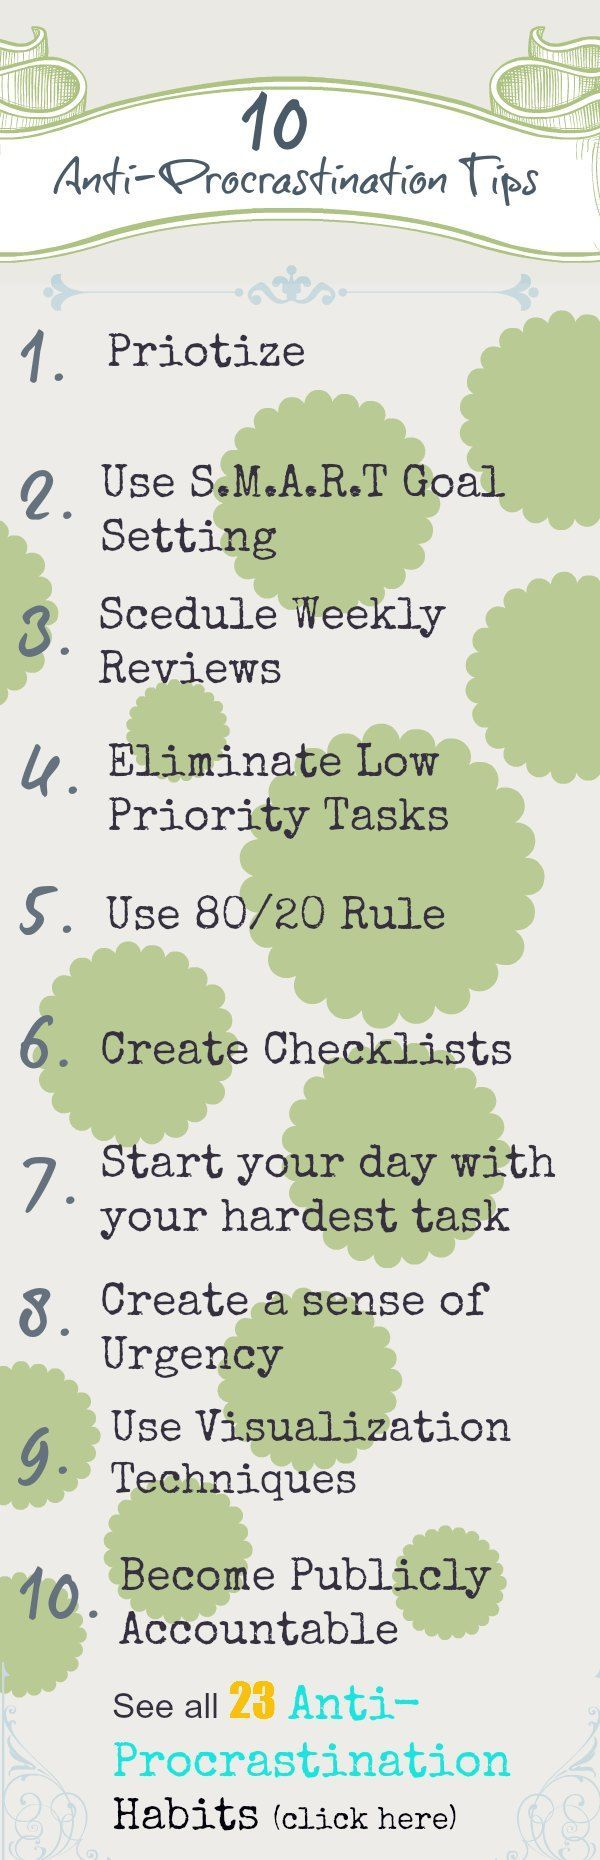 Top Ten Tips to Stop Procrastination | Guide to increasing productivity, quit being lazy and getting more done in your life. #procrastinate #productivity #goal-setting